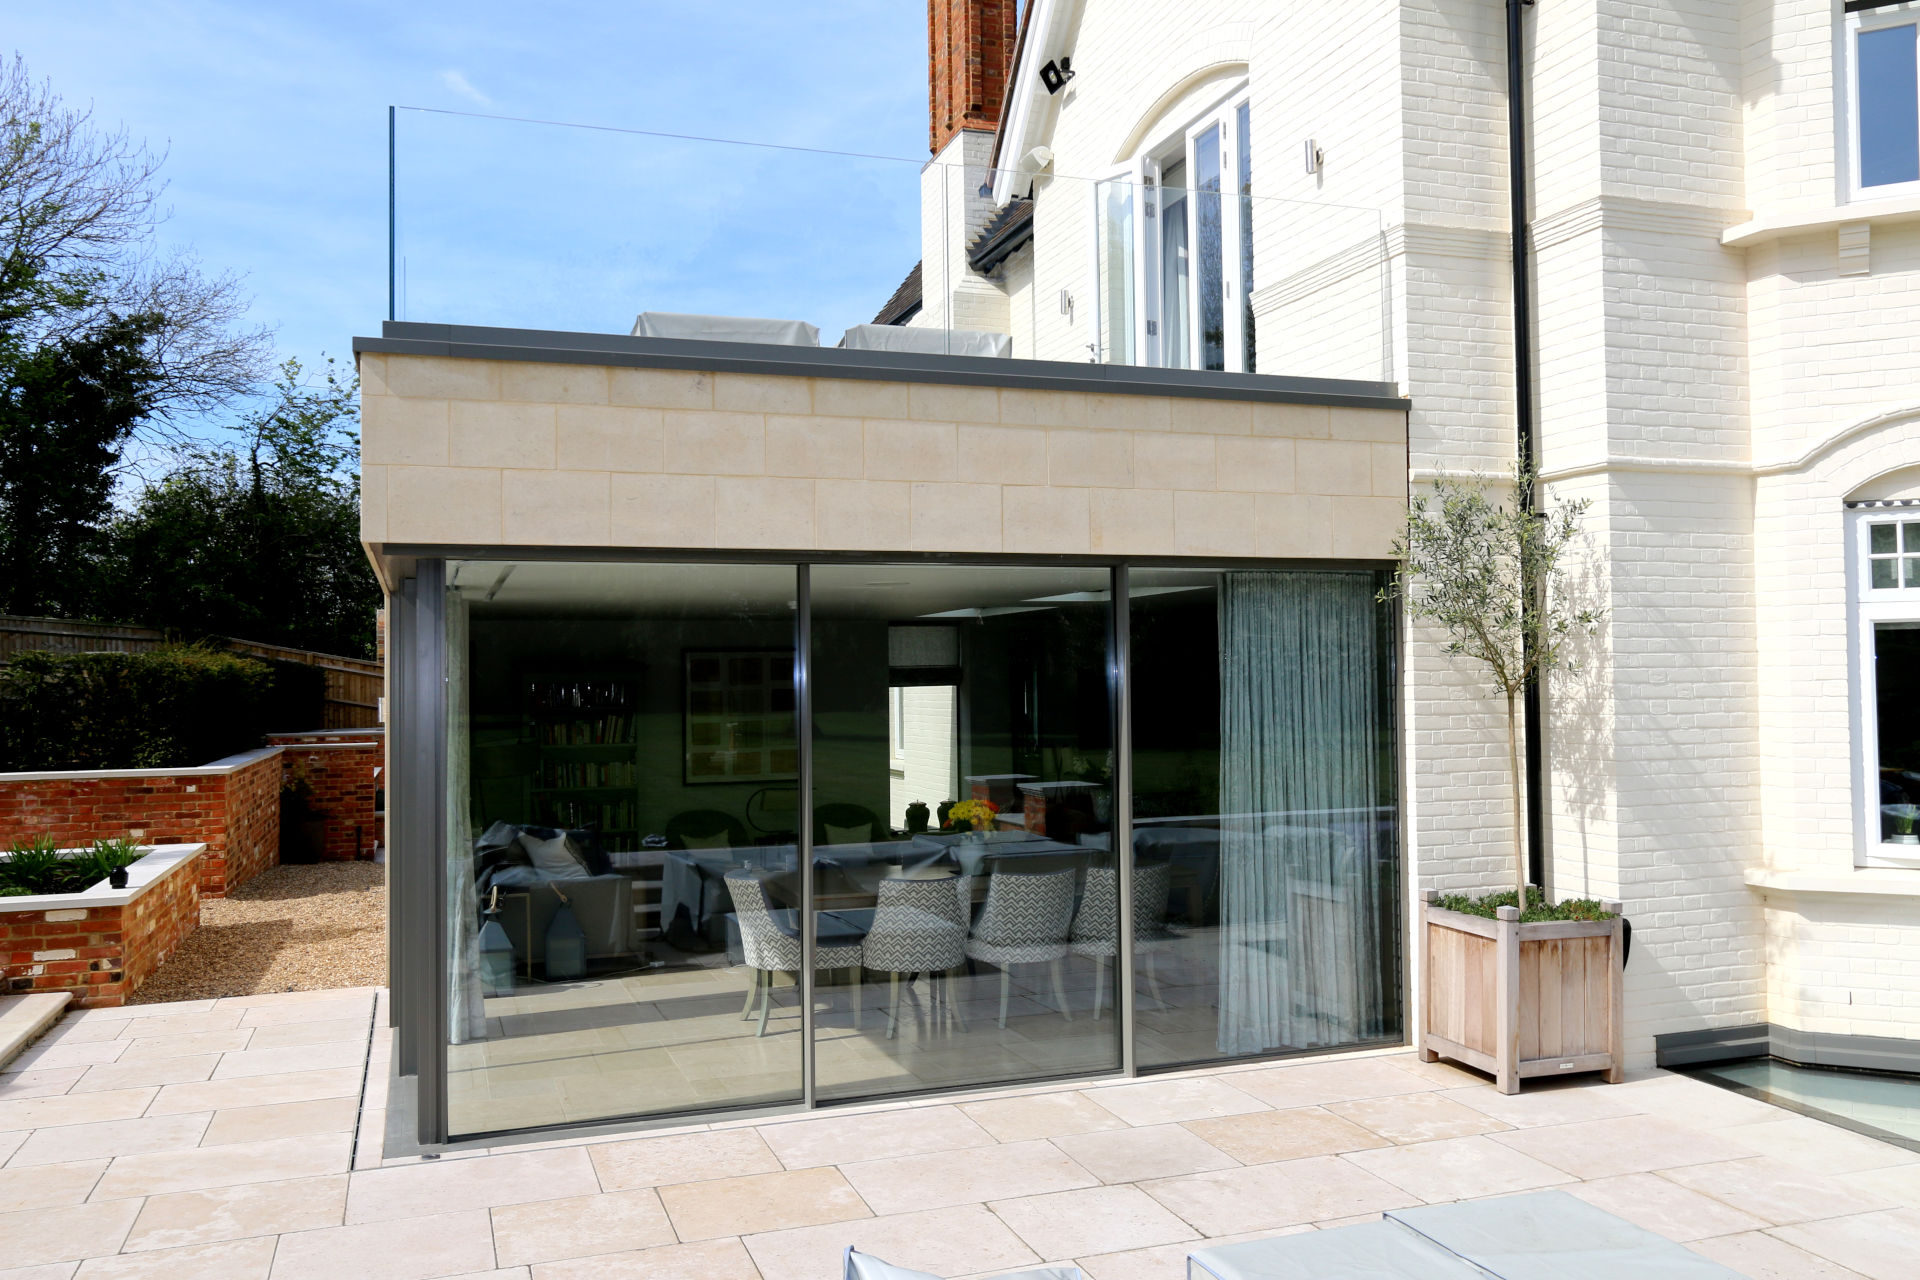 winter-hill-architectural-glazing-slim-framed-sliding-glass-doors